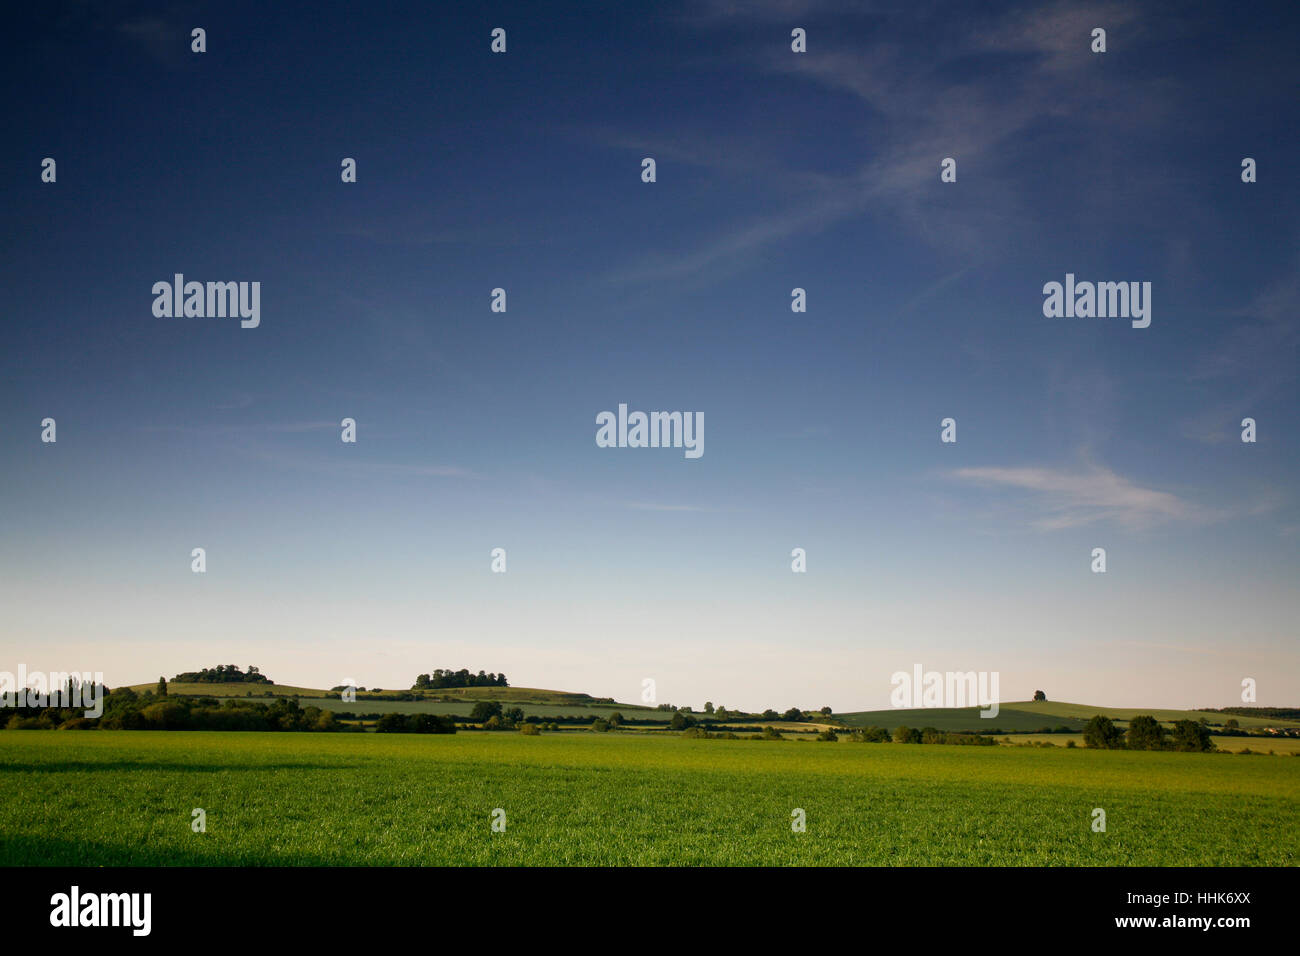 Wittenham Clumps and Brightwell Barrow, Oxfordshire, England, UK - Stock Image